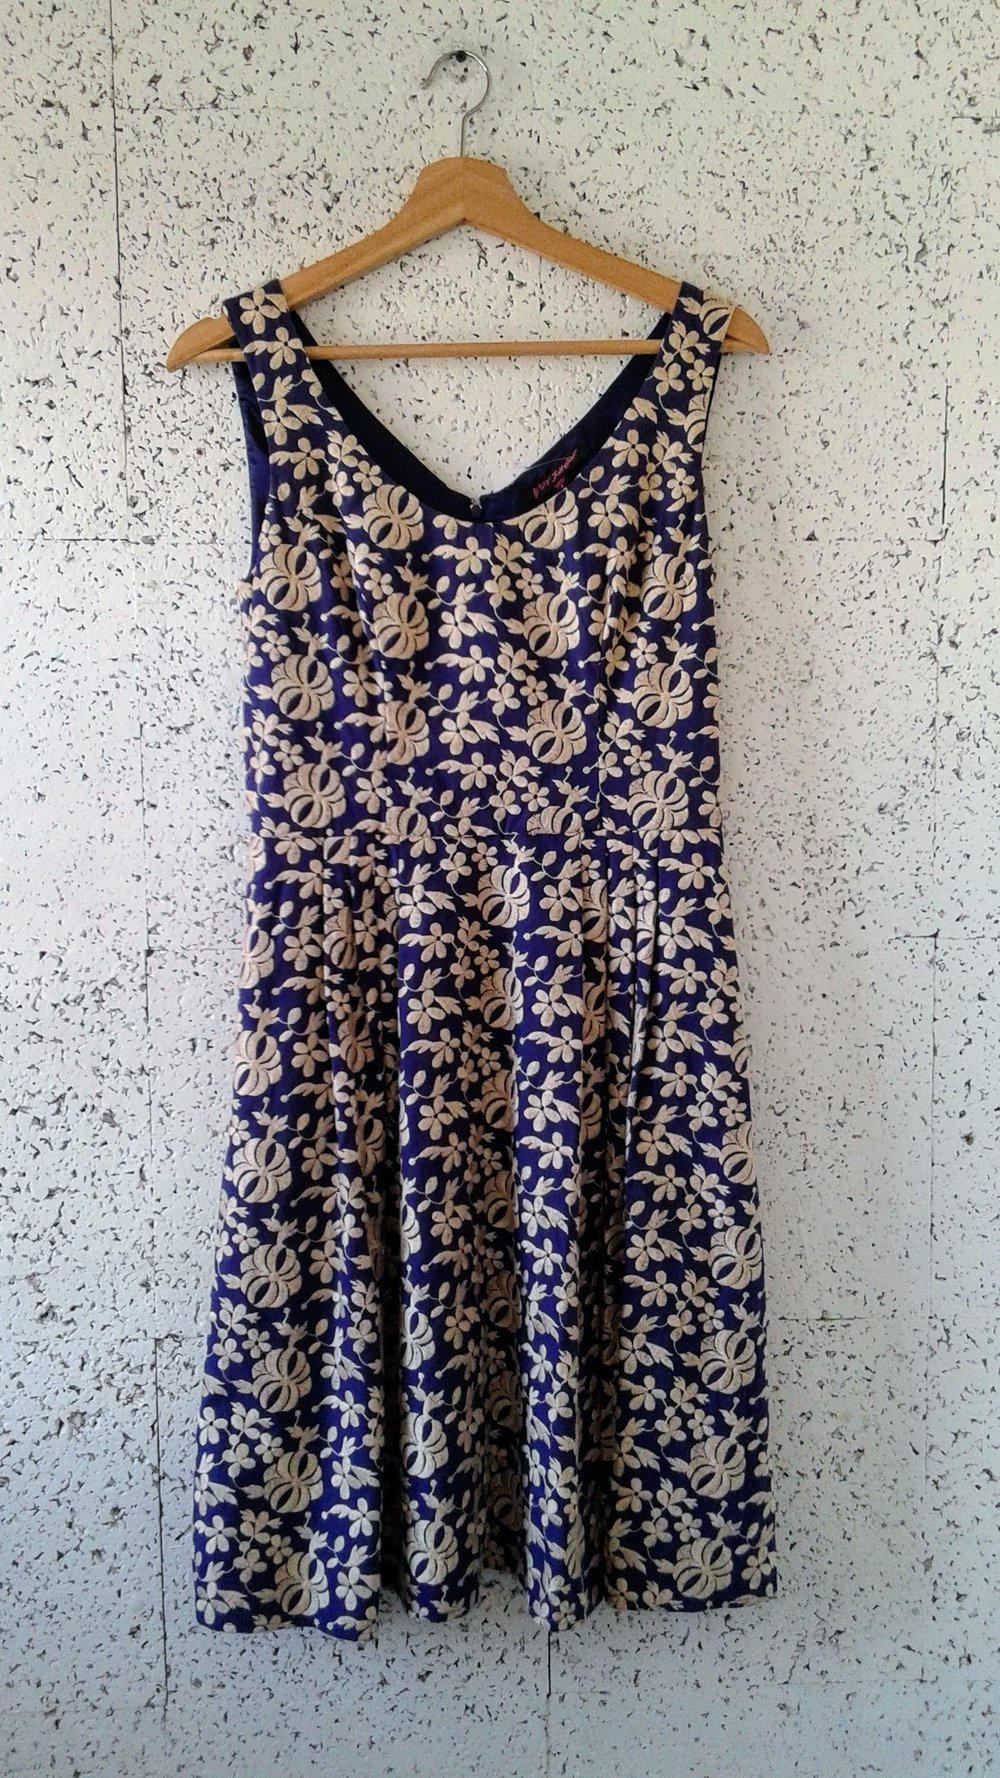 Betsey Johnson dress; Size 6, $62